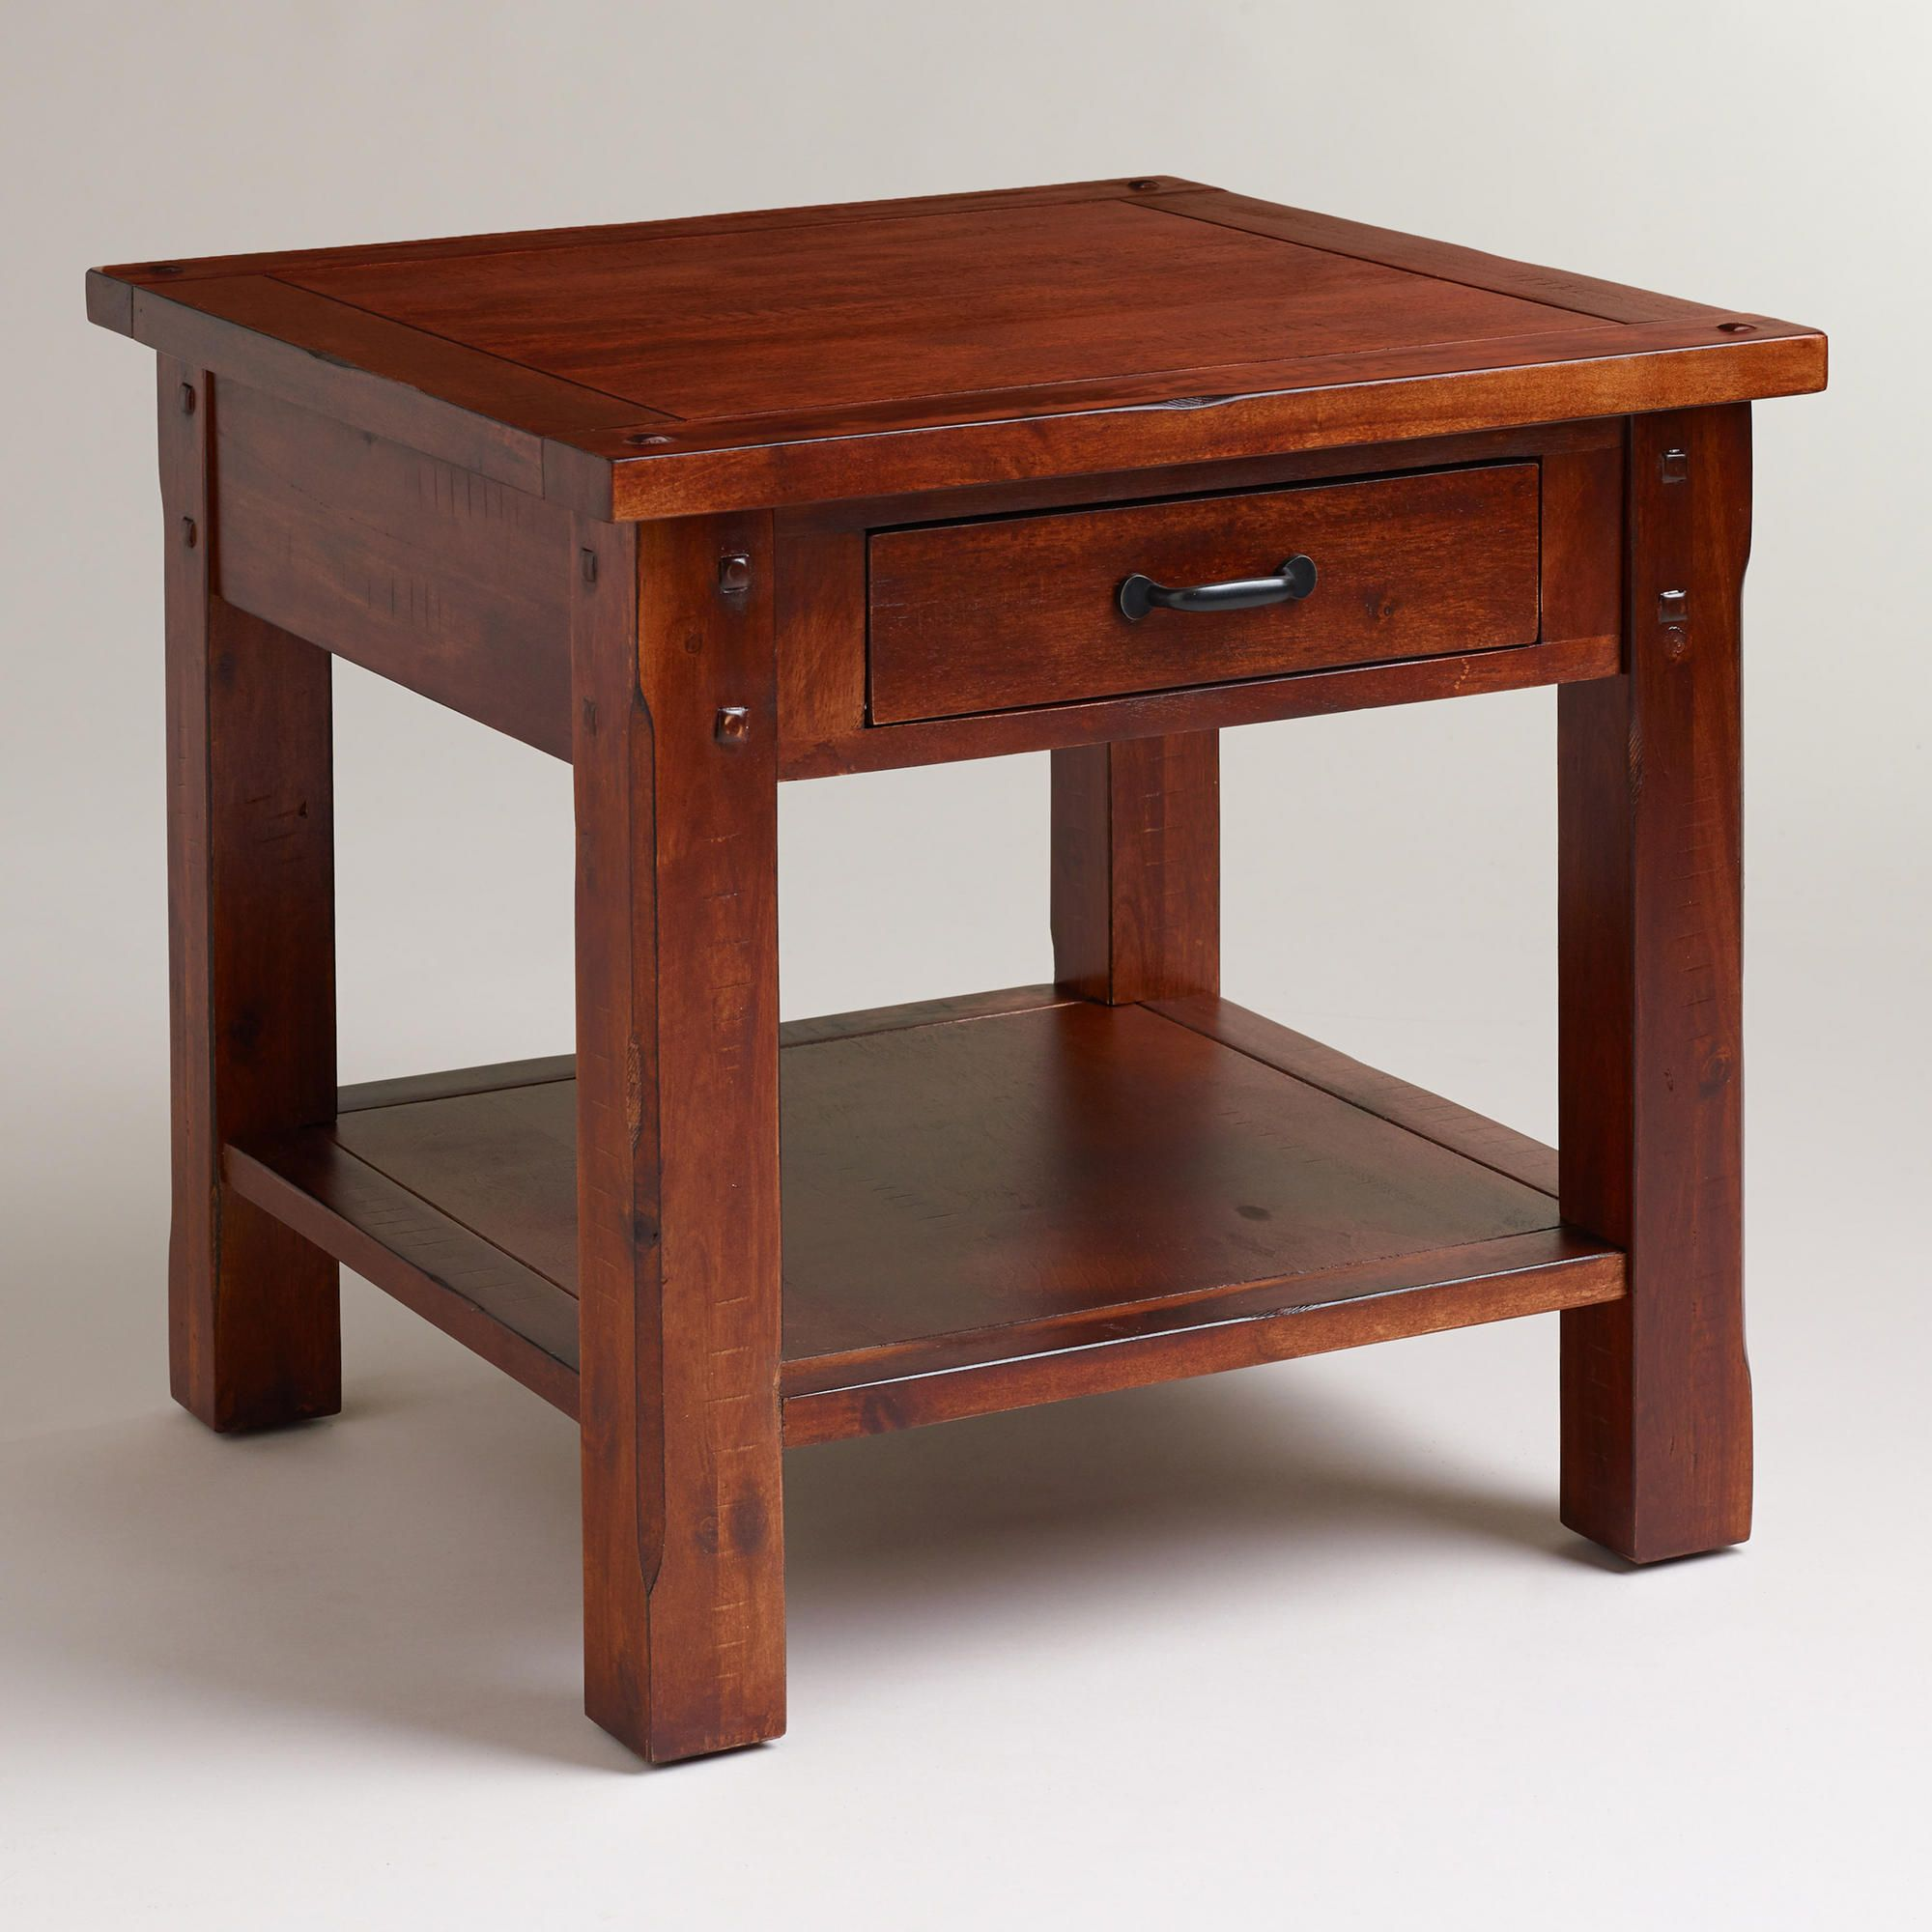 Chunky Rich Mahogany Finished Tables And Trim Living Room Pinterest End Tables End